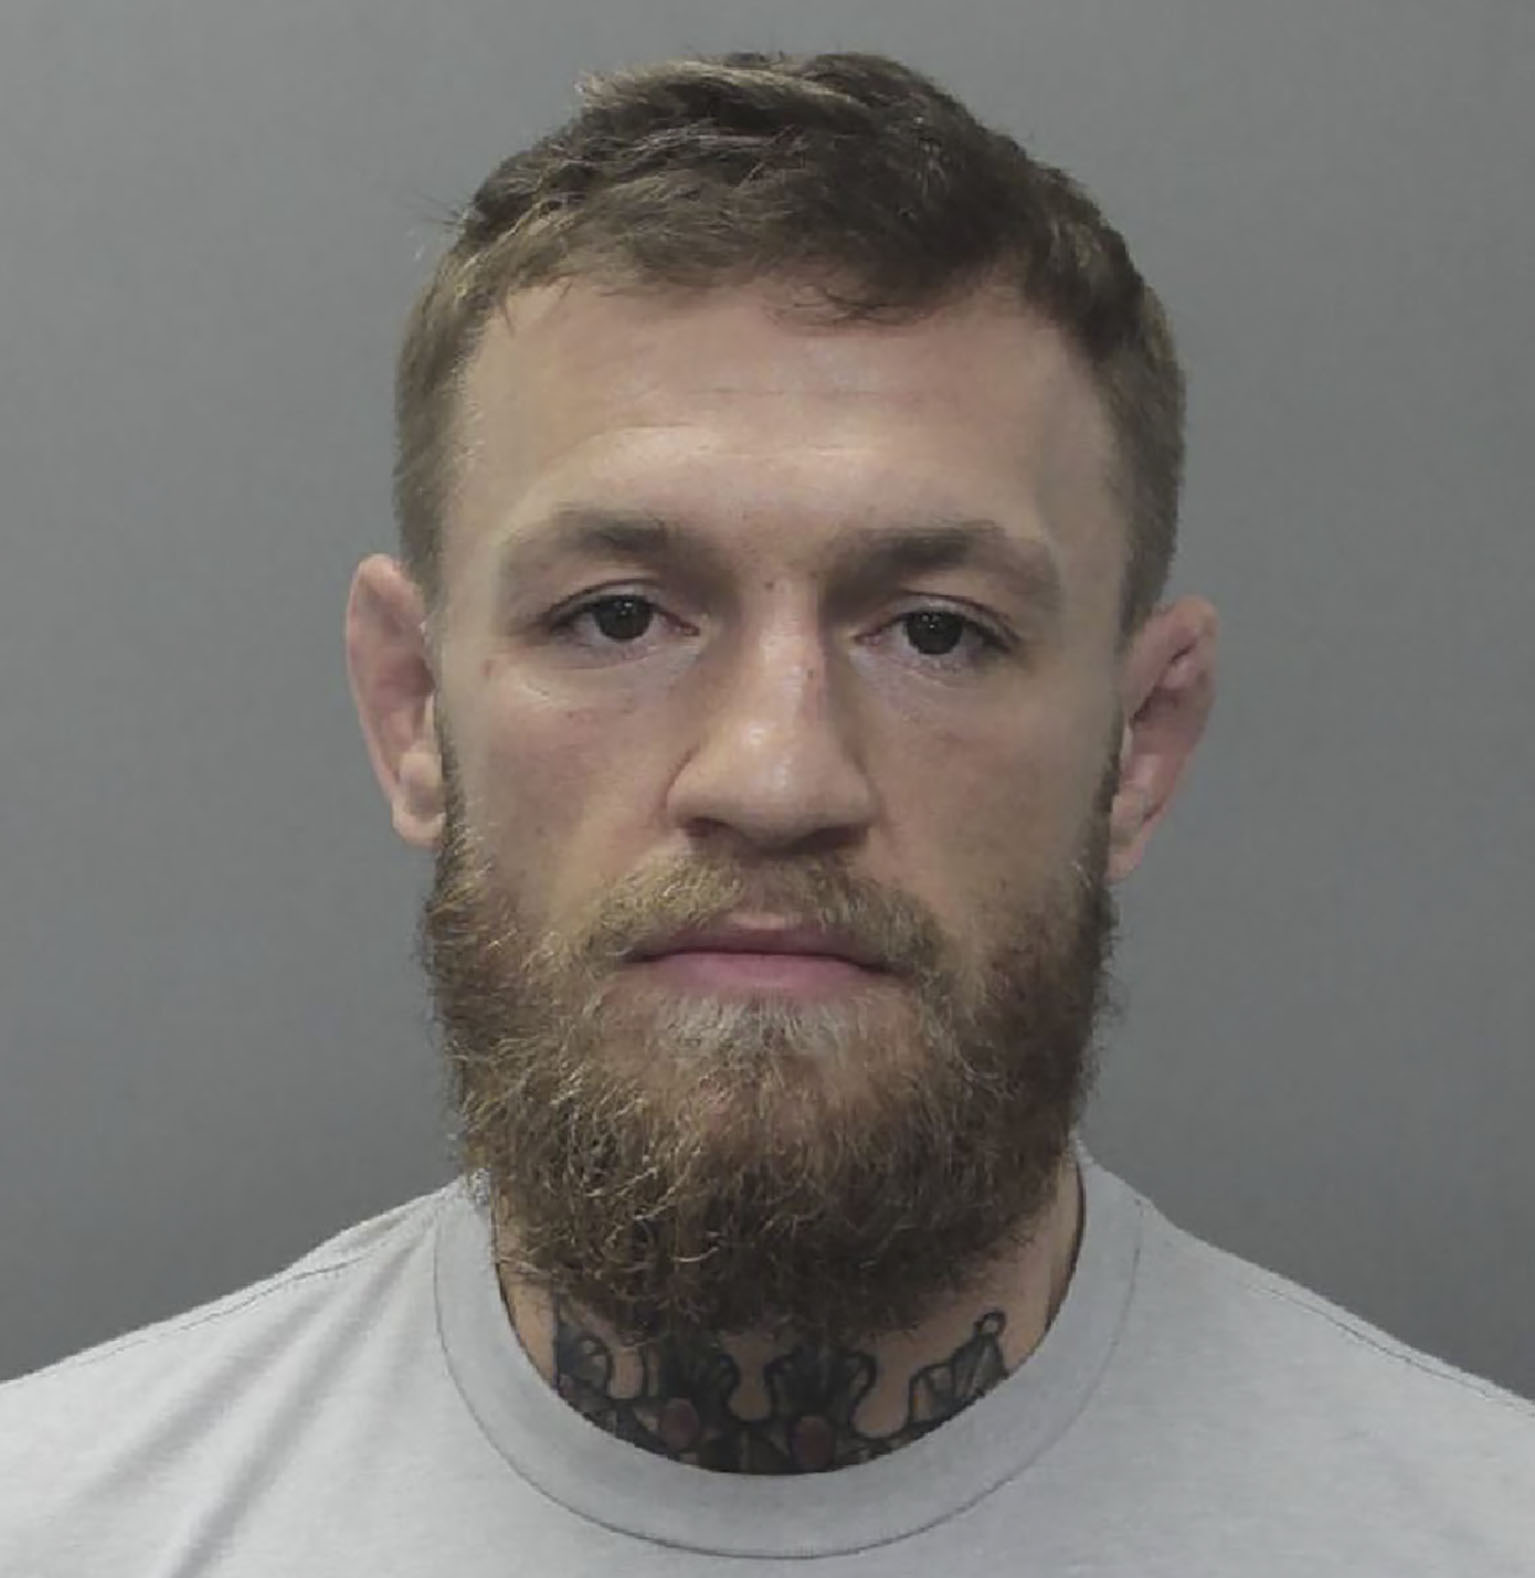 "This booking photo obtained on March 12, 2019 courtesy of the City of Miami Beach Police Department shows mixed martial arts fighter Conor McGregor. - Mixed martial arts fighter Conor McGregor was arrested March 11, 2019 by US police for allegedly smashing a fan's cell phone outside a Florida nightclub. The 30-year-old Irishman was charged with criminal mischief and strong-armed robbery after Miami police said he allegedly slapped the phone out of the fan's hand and then stomped on it. Miami Beach police said they were called to the scene outside the LIV Nightclub at 5:00 am (0900 GMT), The Miami Herald reported. The police started their investigation and McGregor was arrested later that day at a nearby home and then booked into the Miami-Dade jail. (Photo by HO / City of Miami Beach Police Department / AFP) / RESTRICTED TO EDITORIAL USE - MANDATORY CREDIT ""AFP PHOTO / CITY OF MIAMI BEACH POLICE DEPARTMENT/HANDOUT"" - NO MARKETING NO ADVERTISING CAMPAIGNS - DISTRIBUTED AS A SERVICE TO CLIENTS"